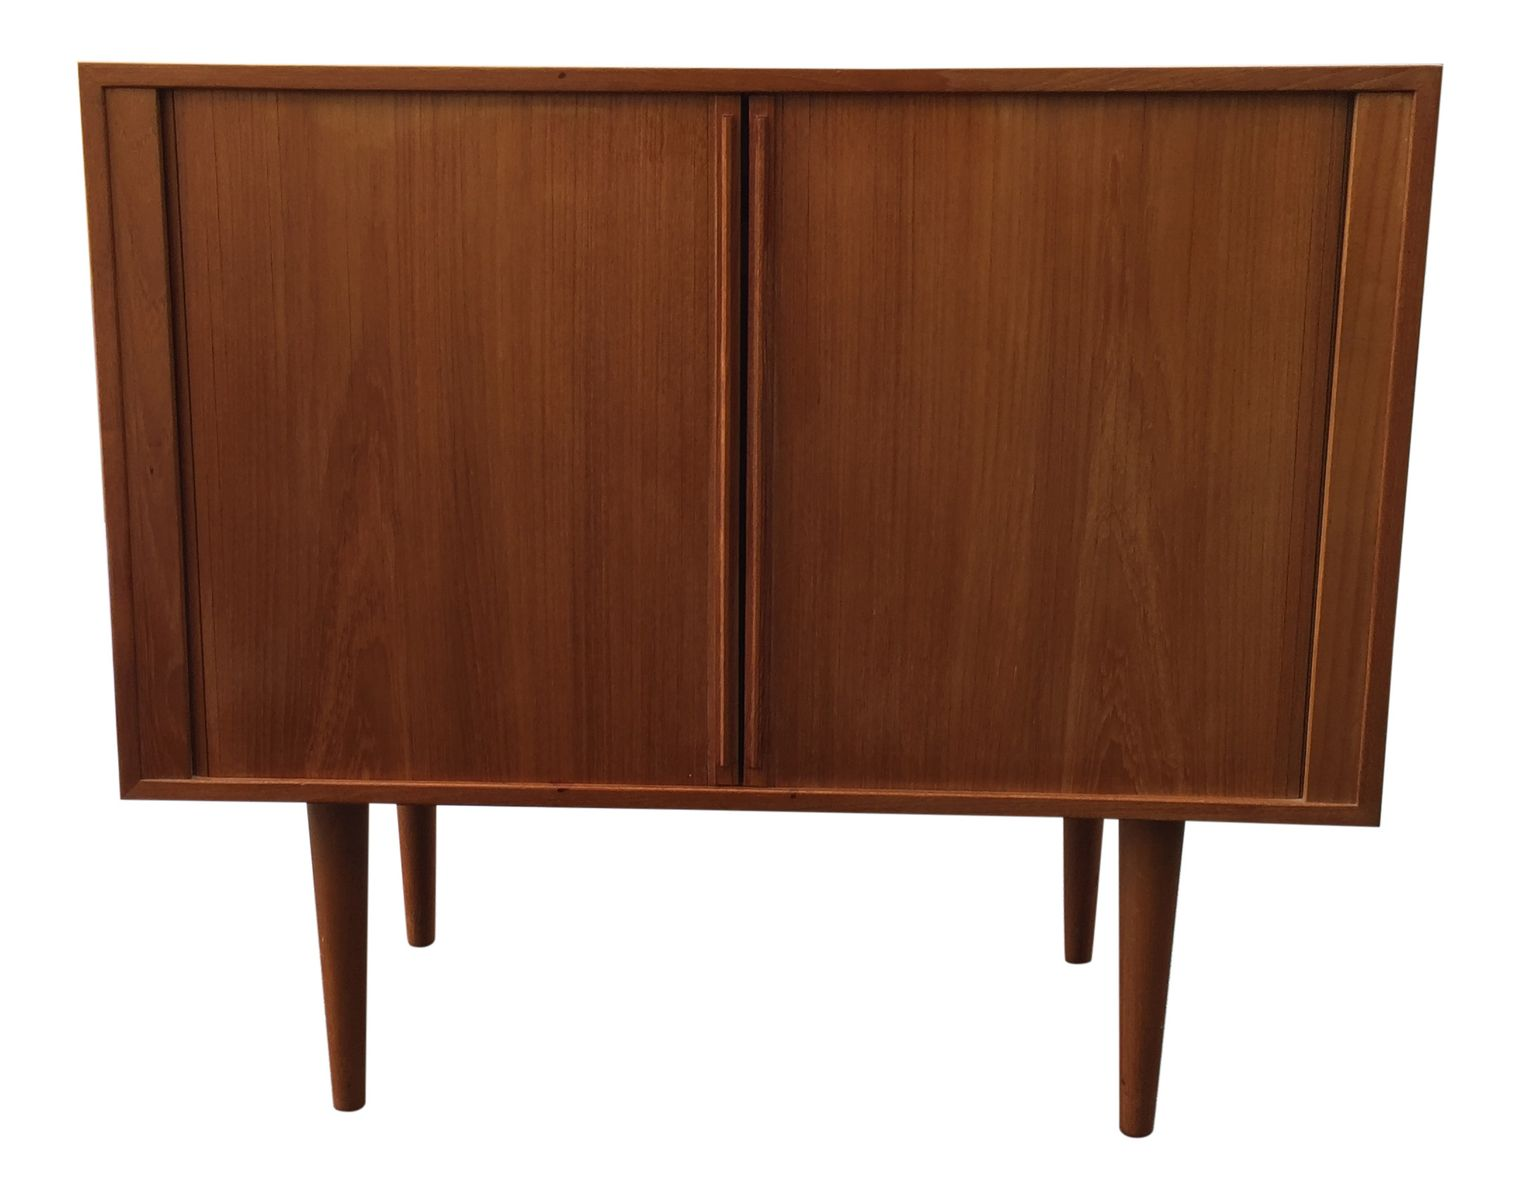 d nisches teak sideboard von kai kristiansen f r feldballes m belfabrik 1960er bei pamono kaufen. Black Bedroom Furniture Sets. Home Design Ideas